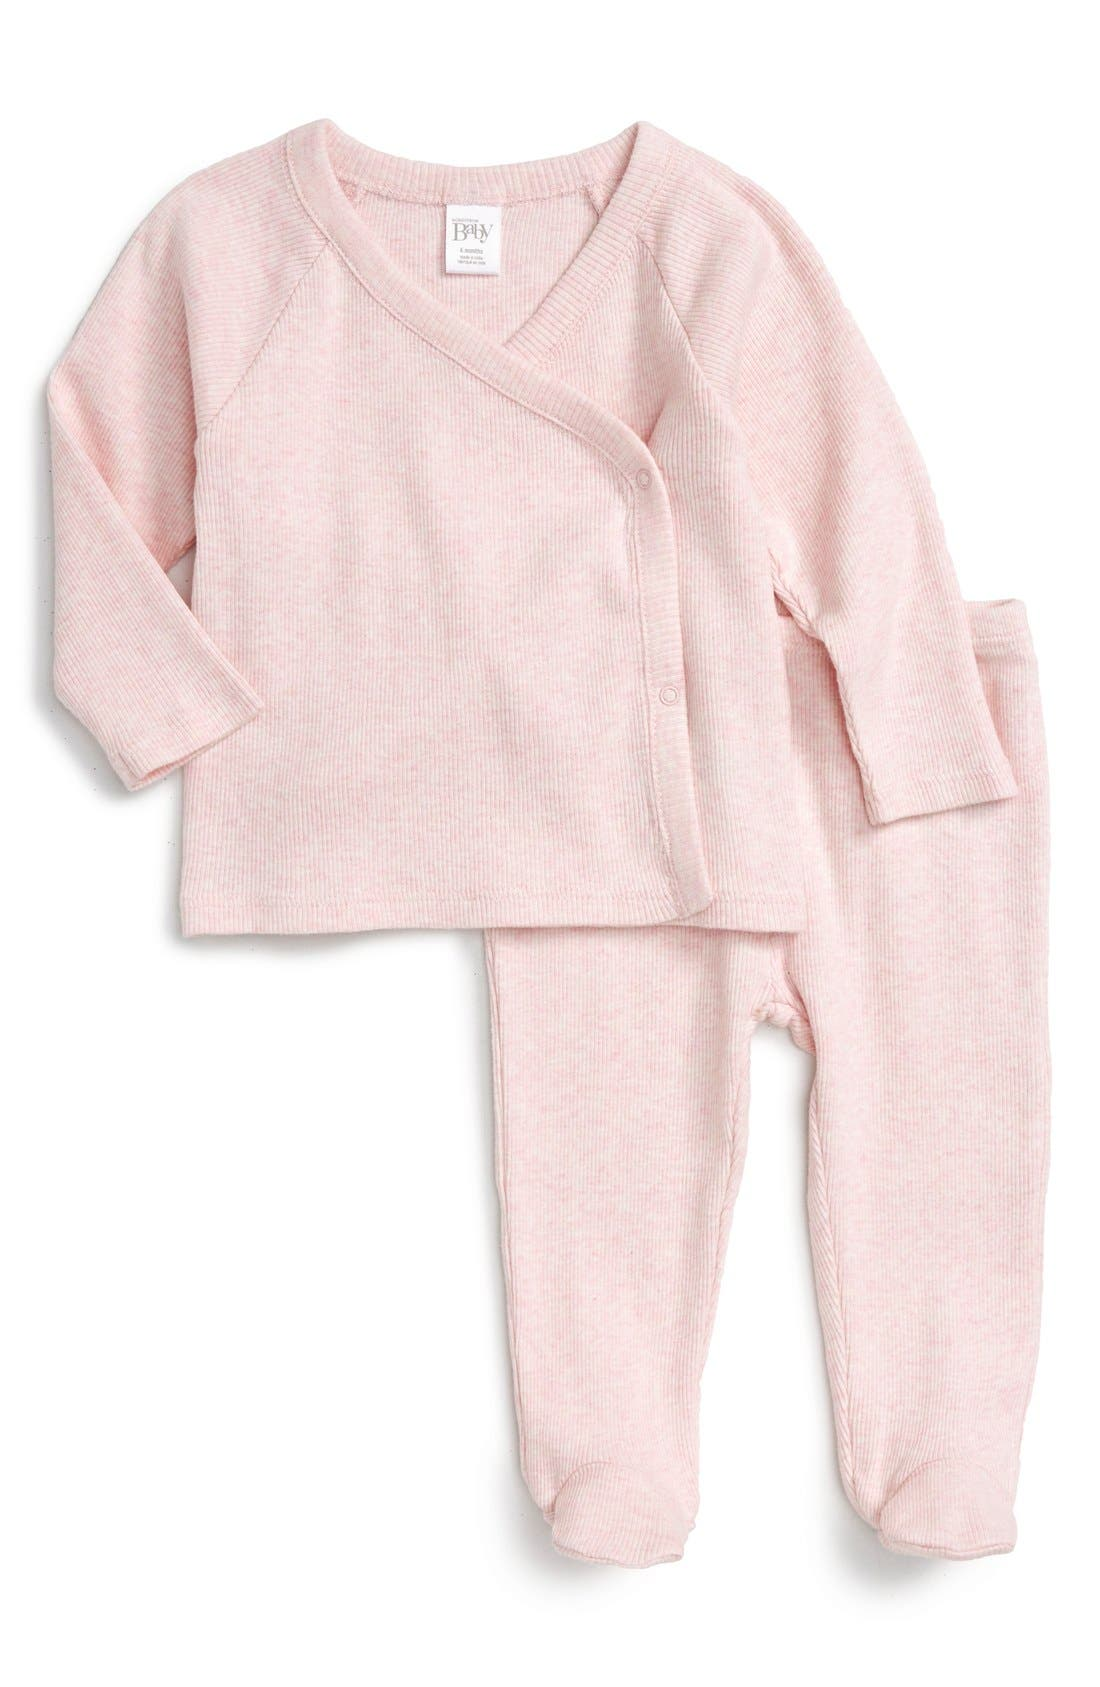 Nordstrom Baby Wrap Top & Footed Pants Set (Baby Girls)